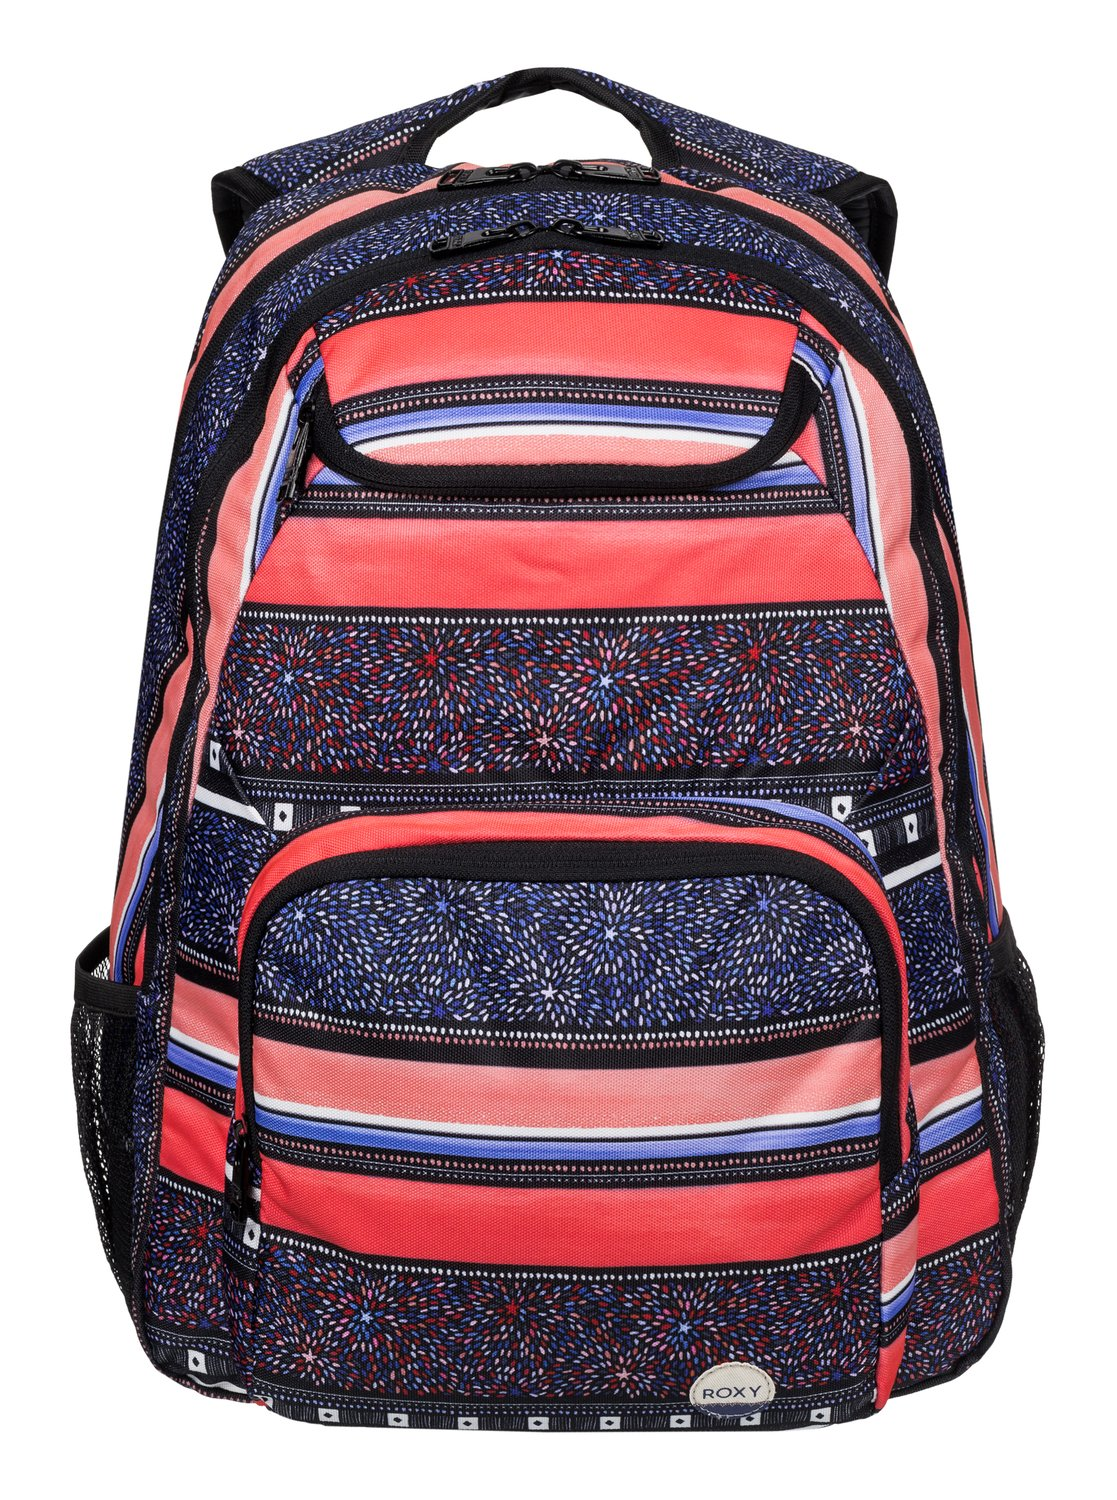 shadow swell backpack 889351442956 roxy. Black Bedroom Furniture Sets. Home Design Ideas